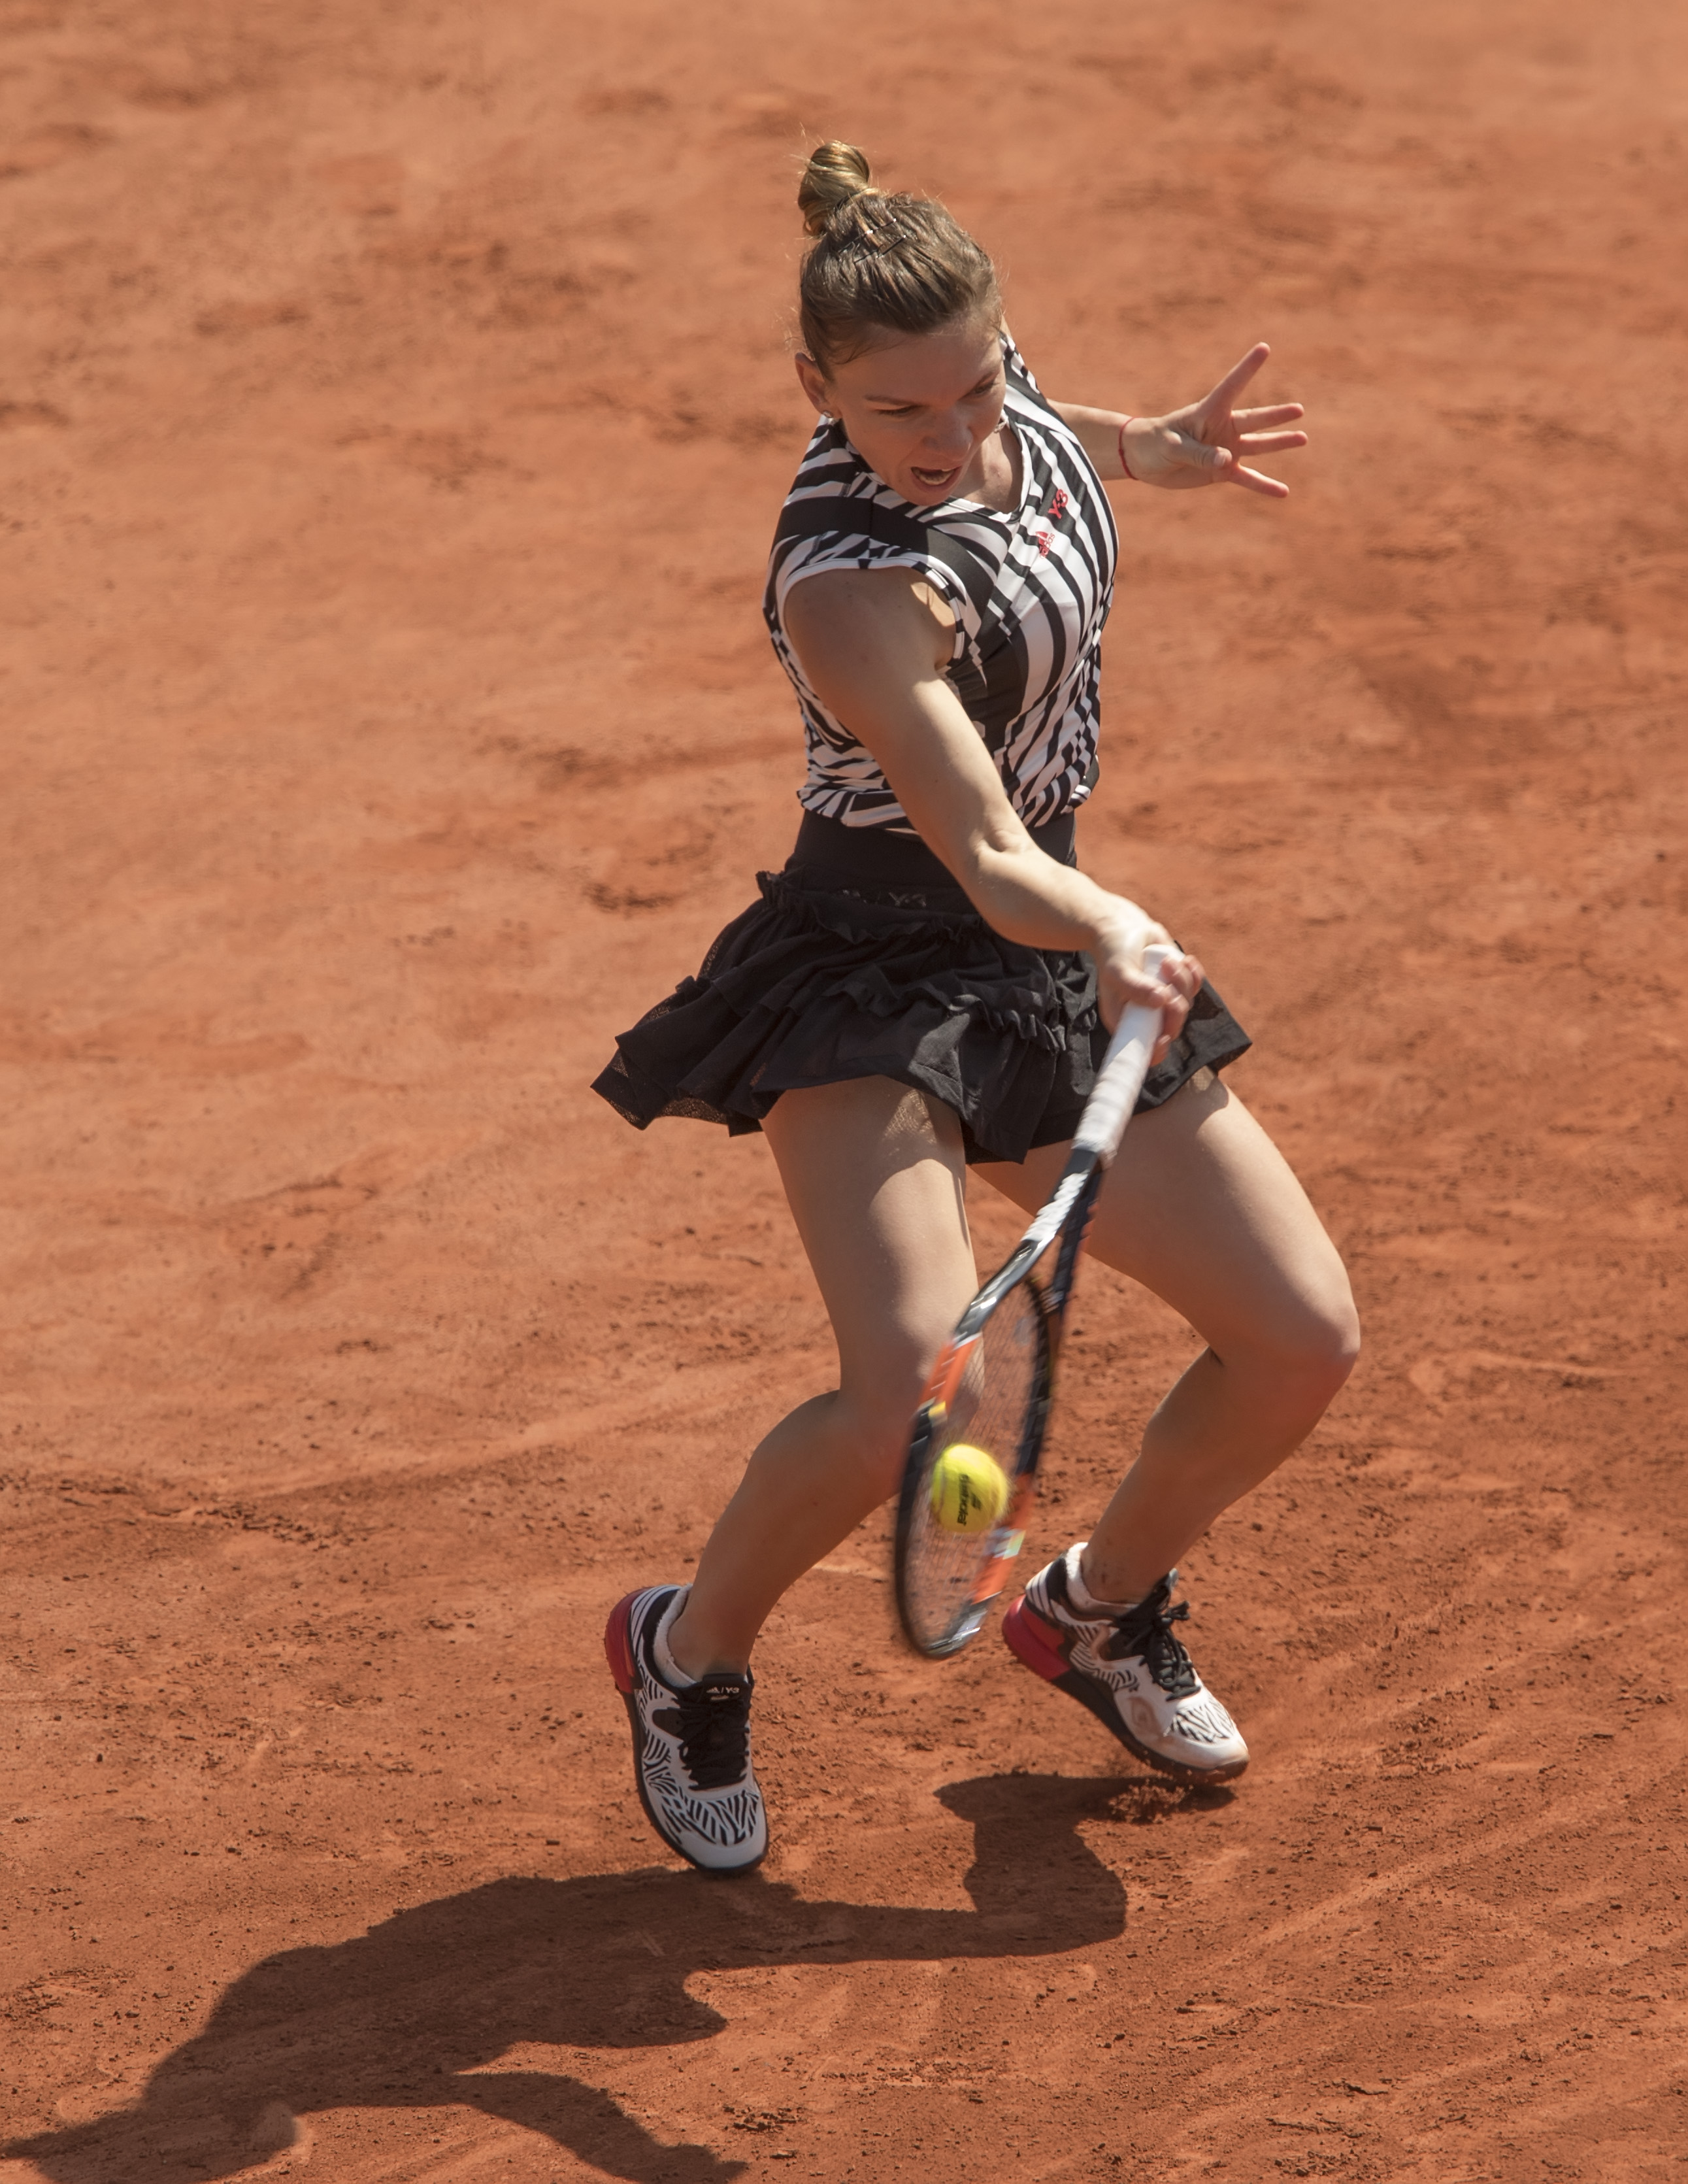 May 25, 2016; Paris, France; Simona Halep (ROU) in action during her match against Zarina Diyas (KAZ) on day four of the 2016 French Open.